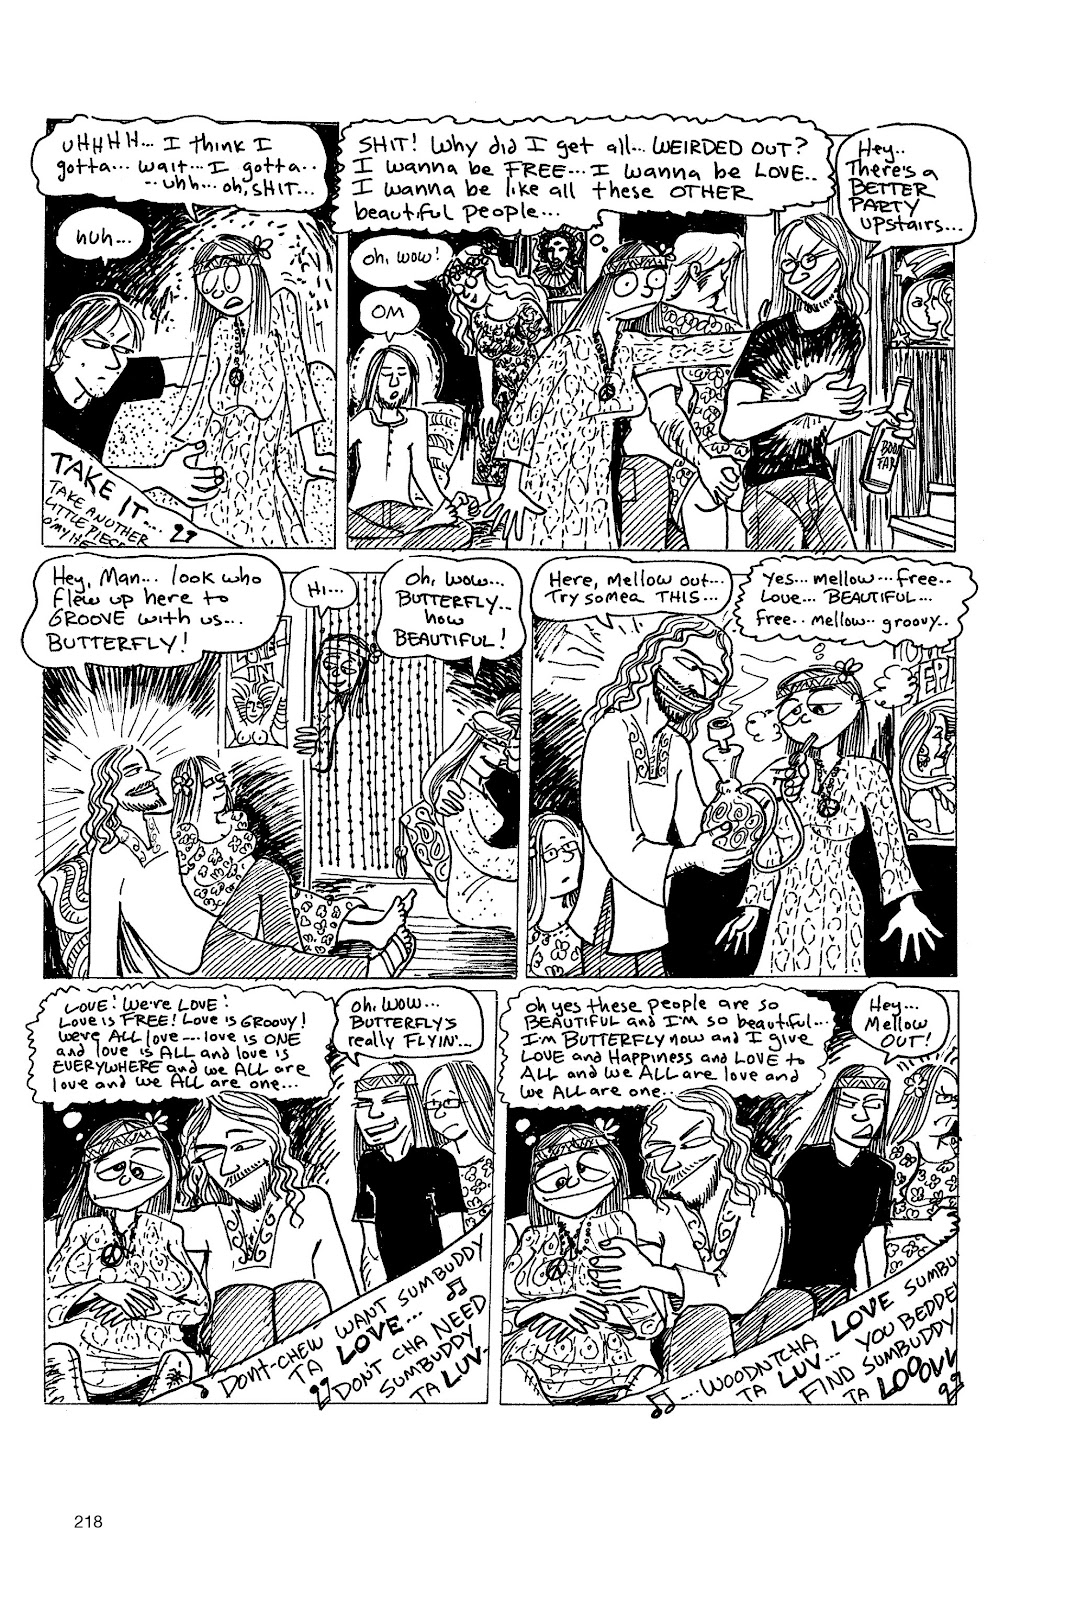 Read online Life's a Bitch: The Complete Bitchy Bitch Stories comic -  Issue # TPB (Part 3) - 13